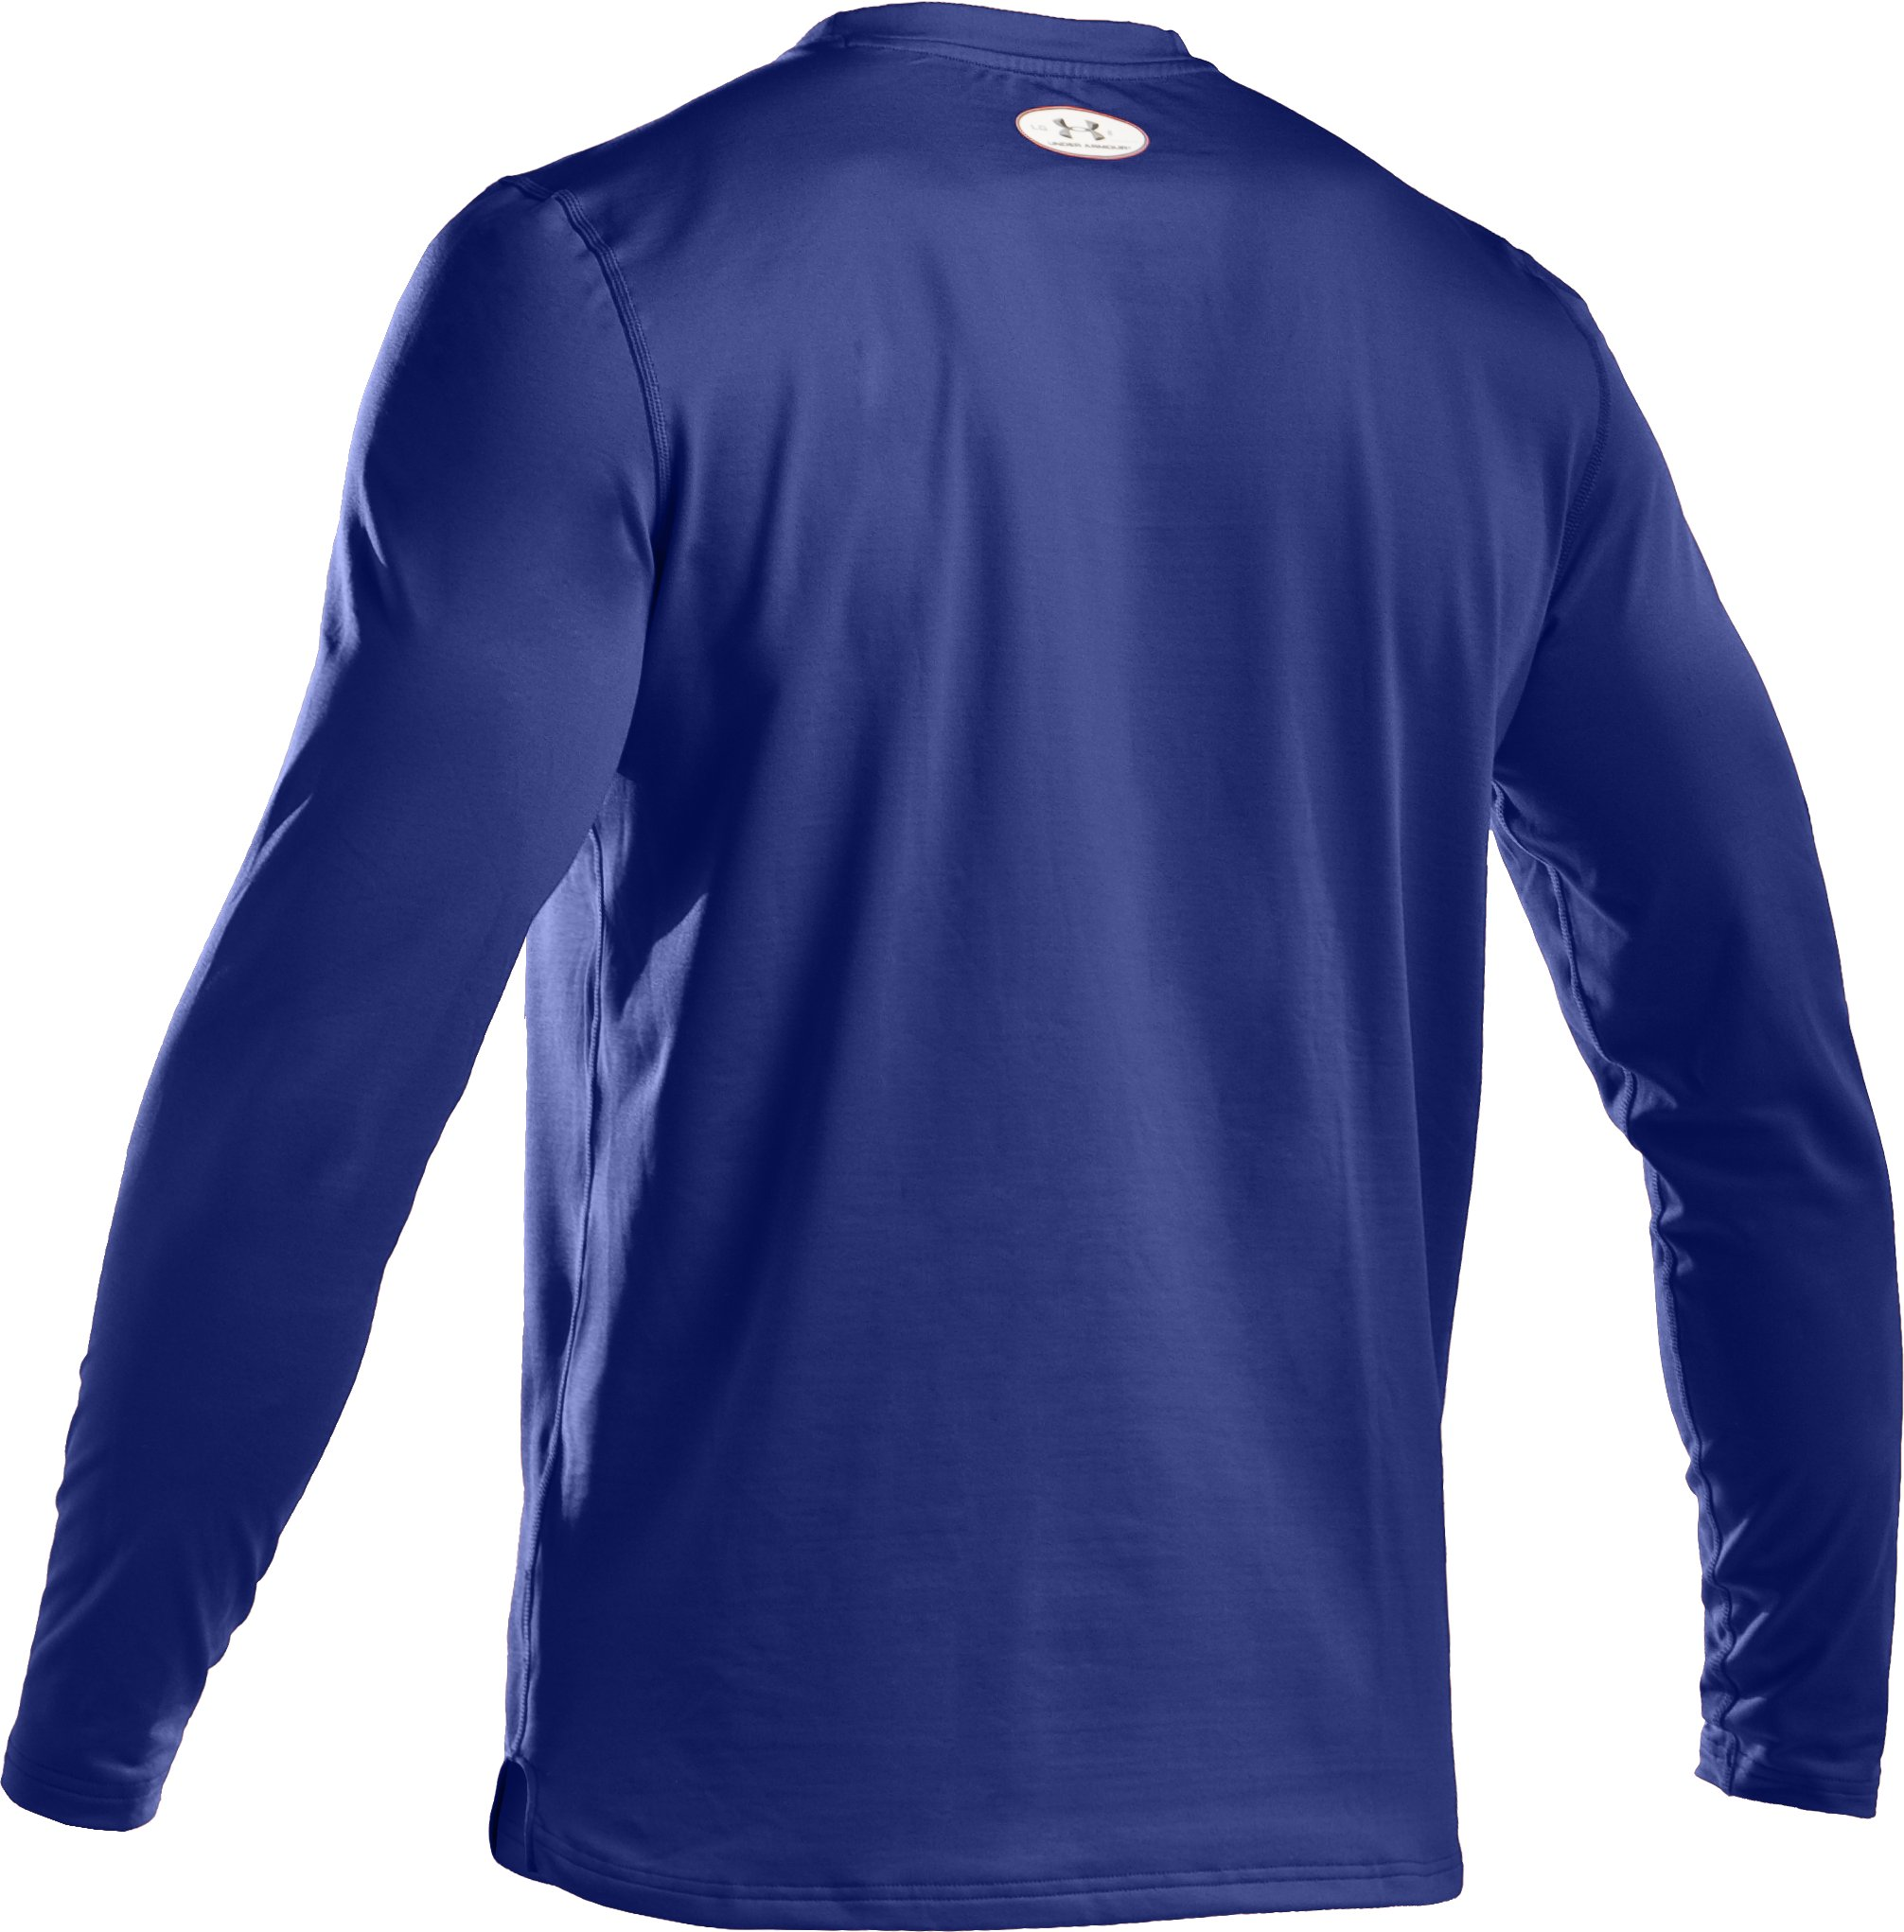 Men's ColdGear® Fitted Long Sleeve Crew, Royal, undefined